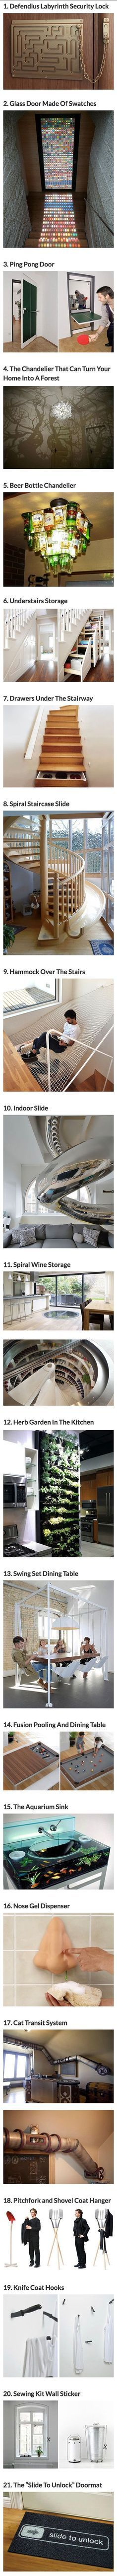 Some of these ideas would be AMAZING fun depending on my future home style. Especially the shovel and pitchfork!! Check out my other pins and consider following me if you like what you see.